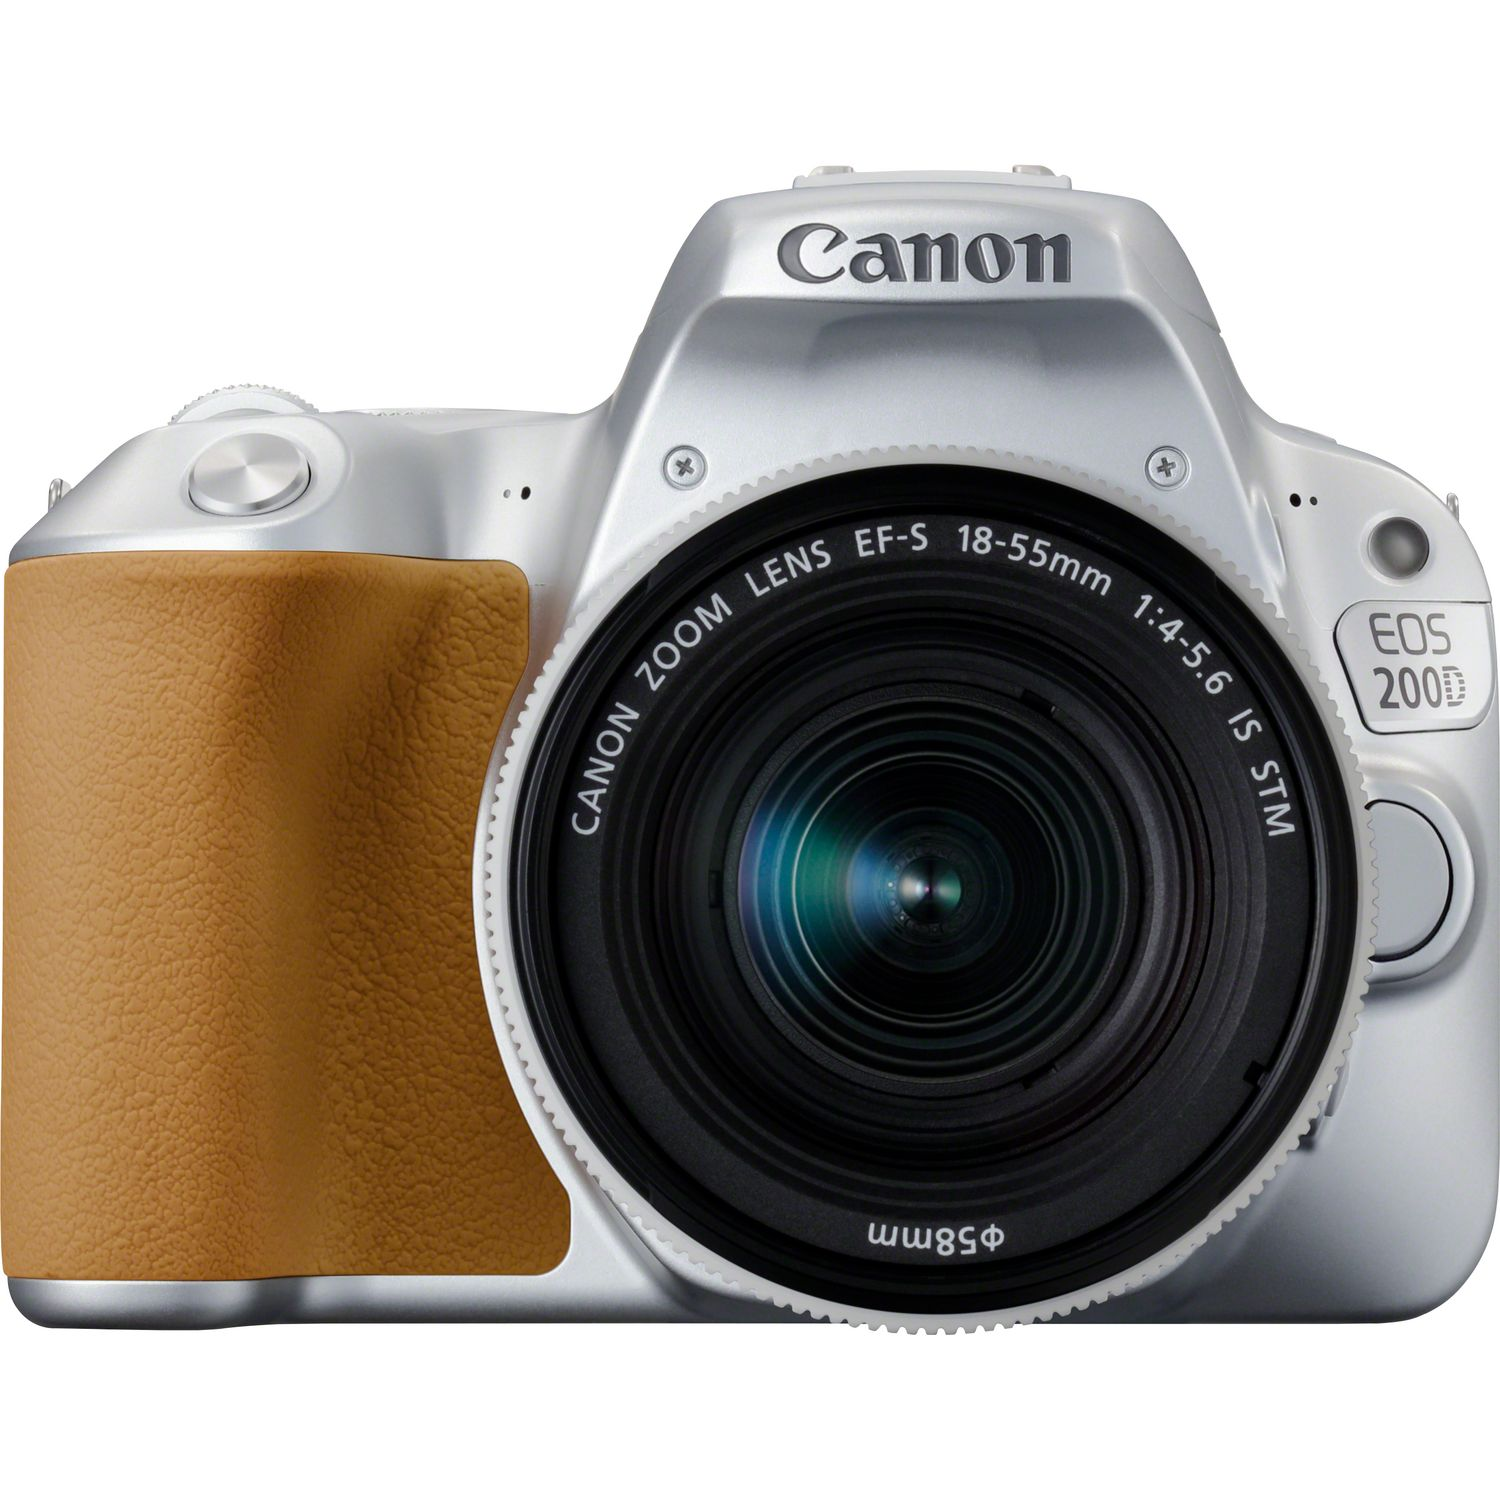 Canon EOS 200D Silber + EF-S 18-55mm 1:4-5,6 IS STM Objektiv Silber ...